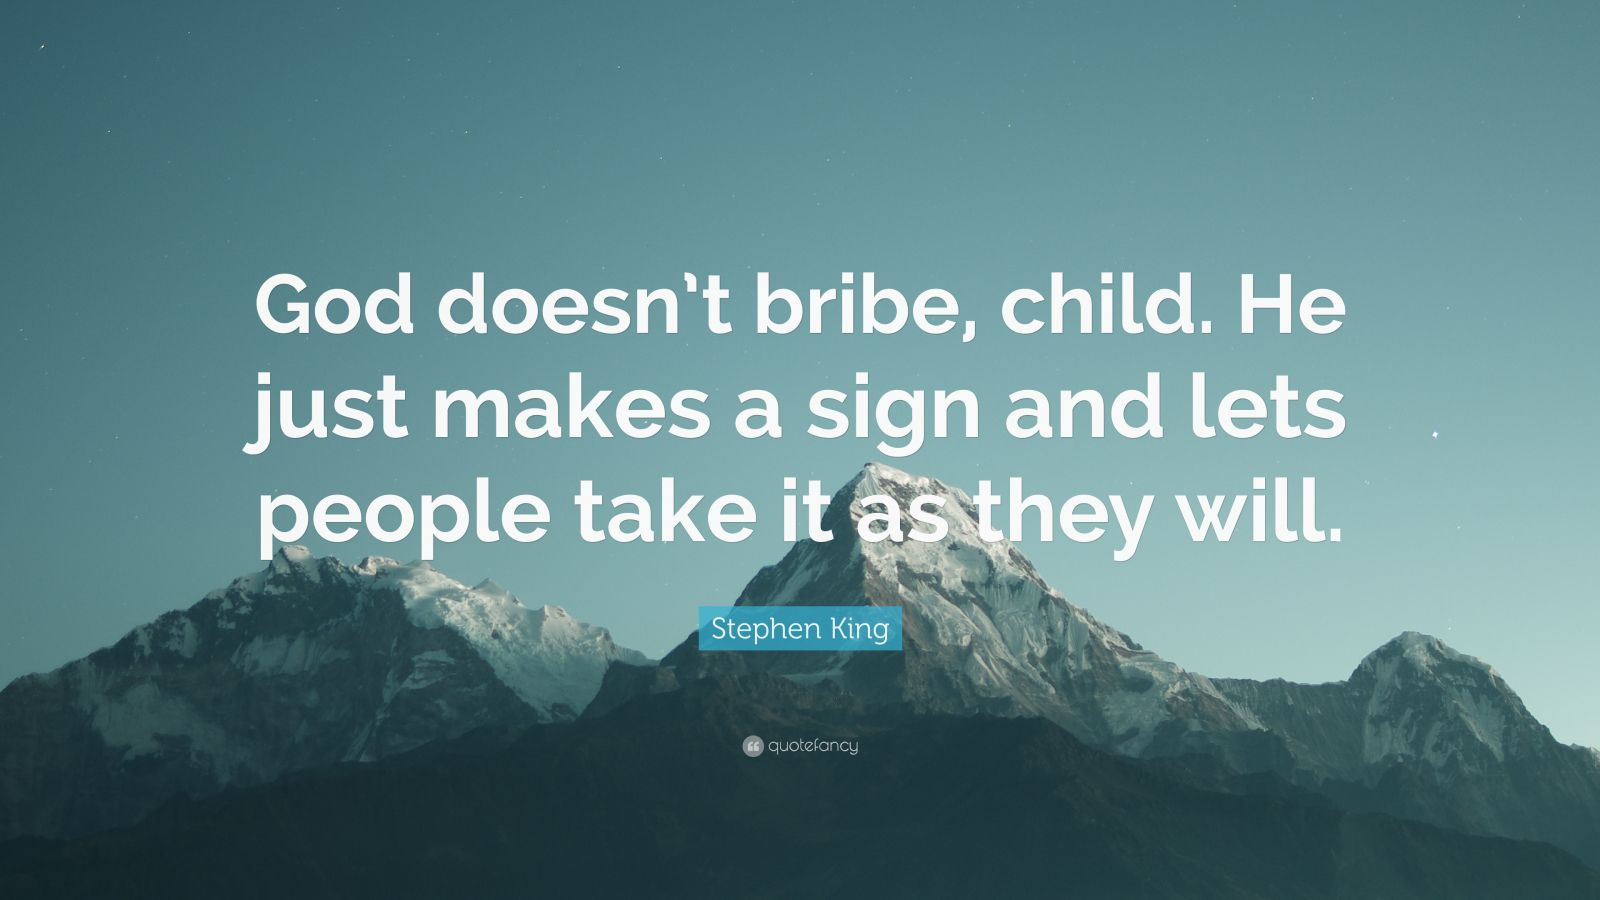 """Stephen King Quote: """"God doesn't bribe, child. He just makes a sign and lets people take it as they will."""""""